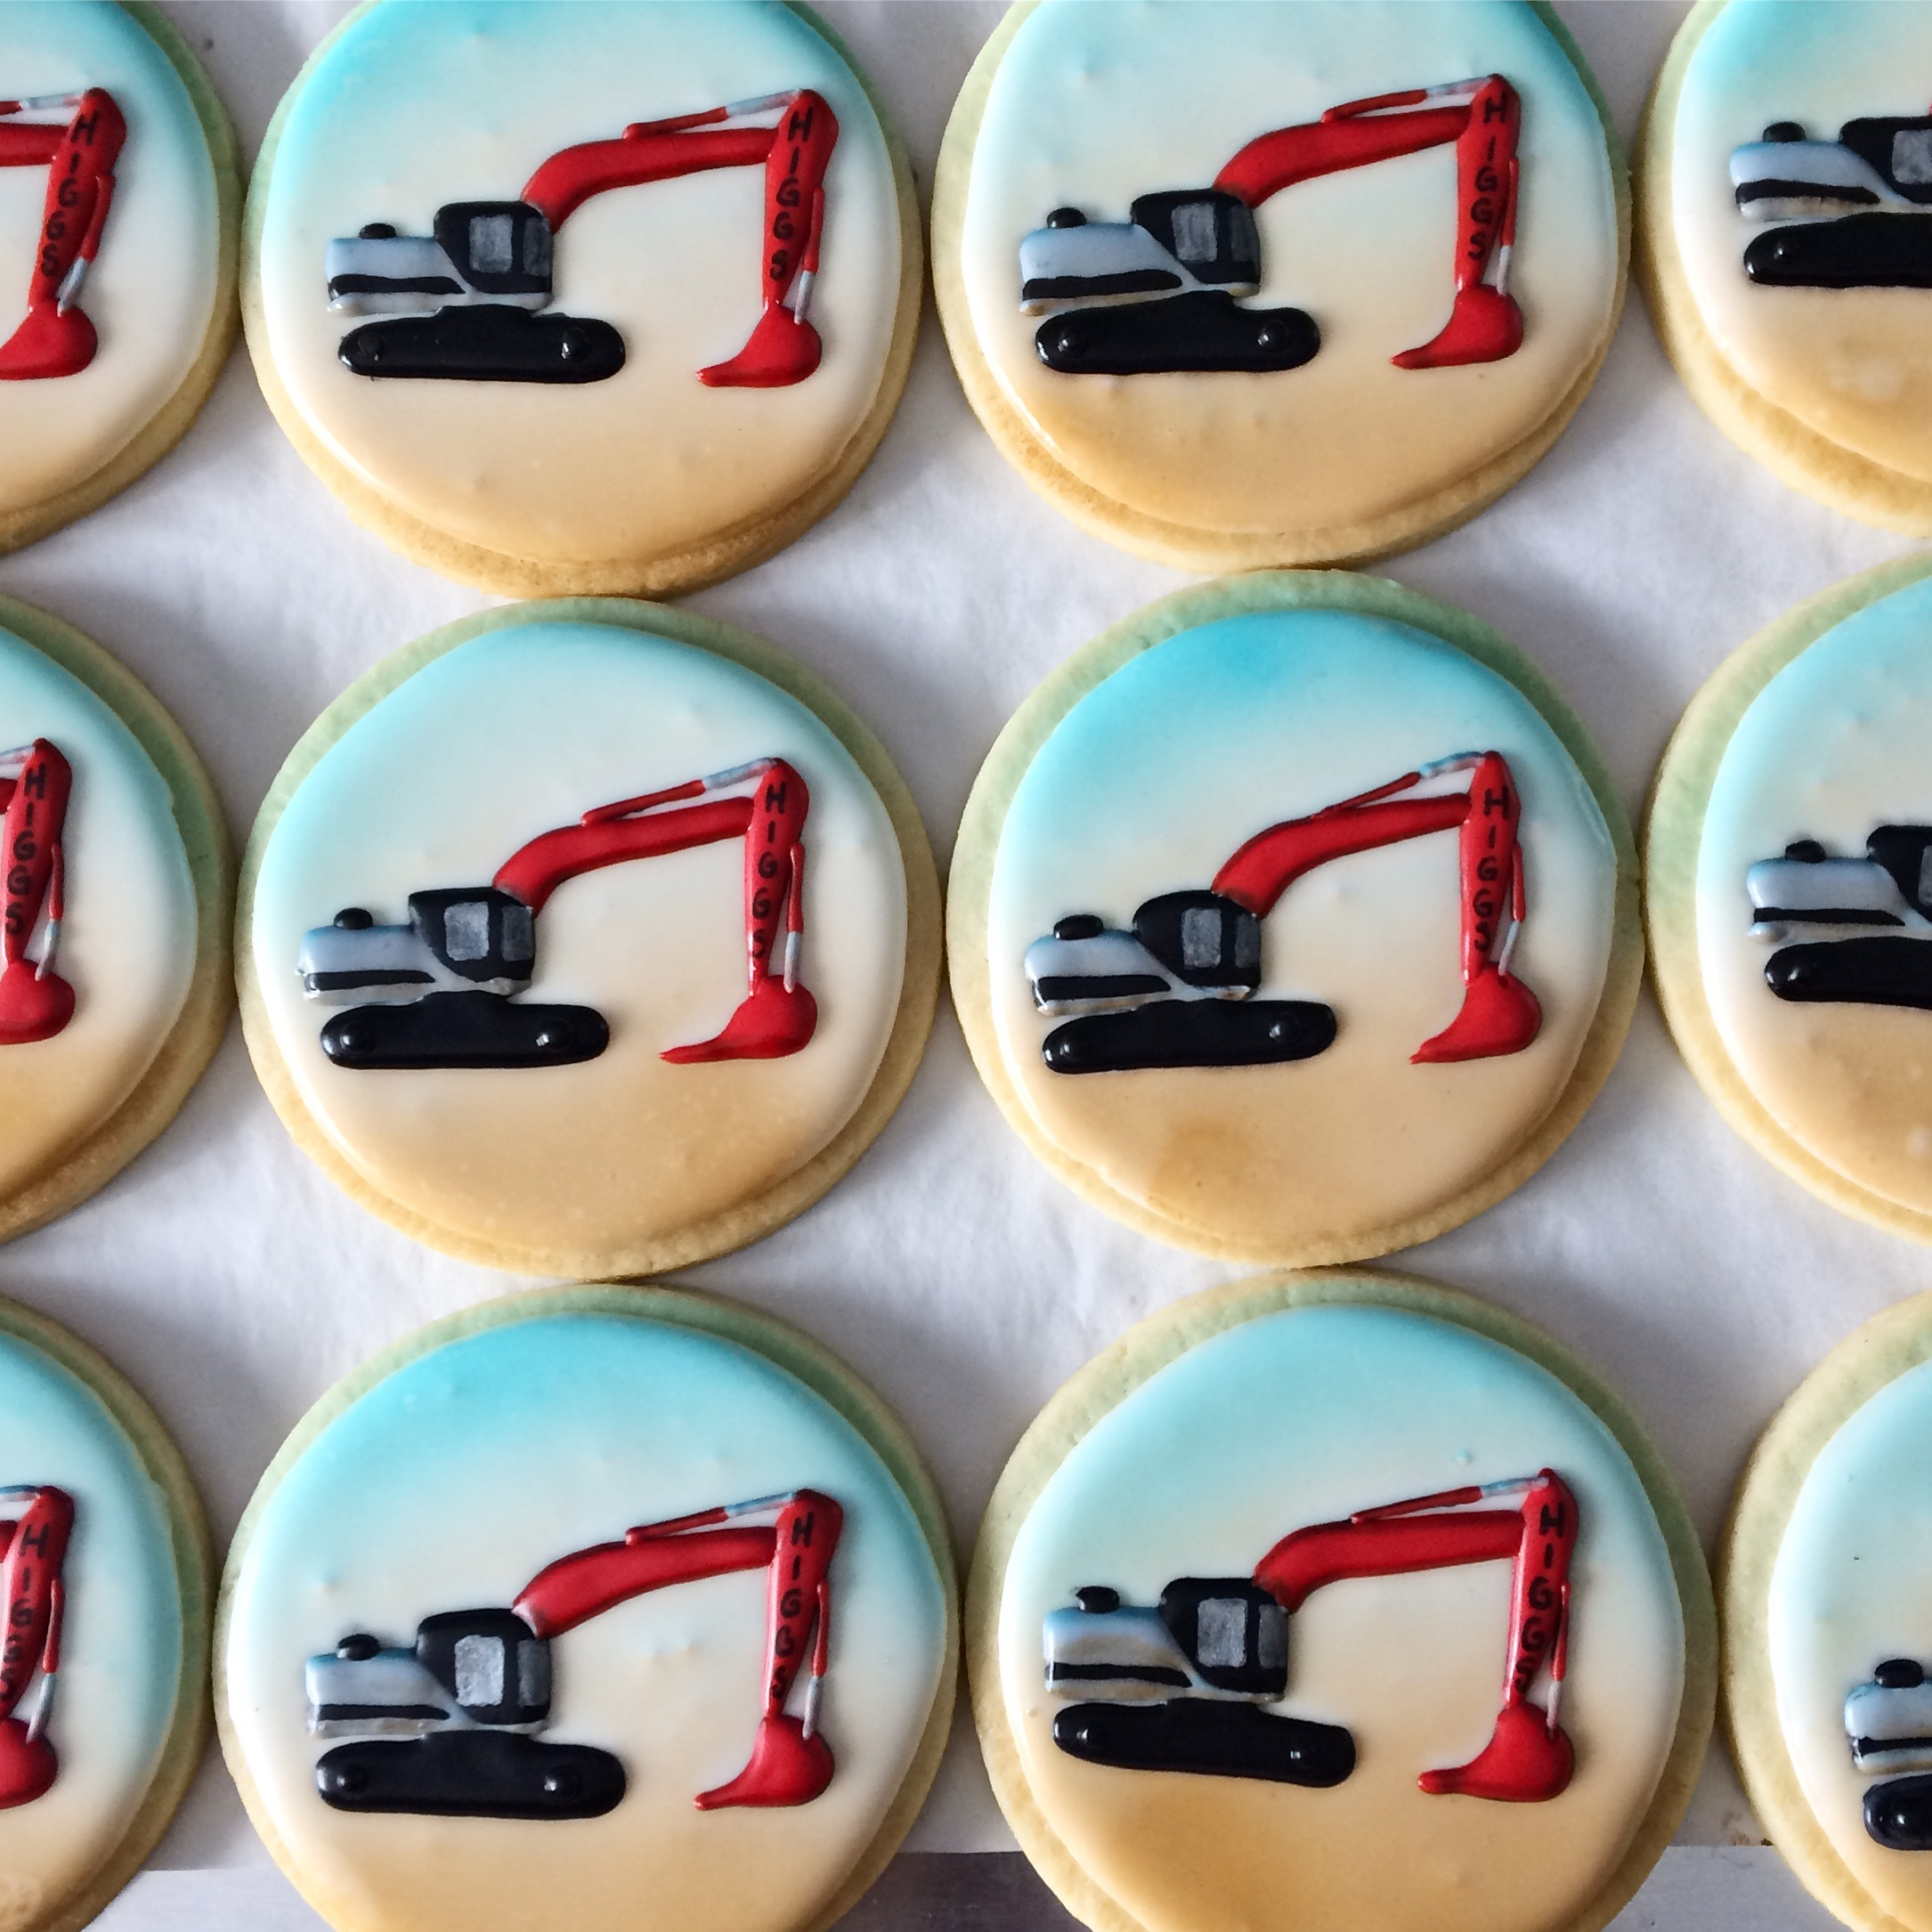 Excavator Cookies by Seed Confections